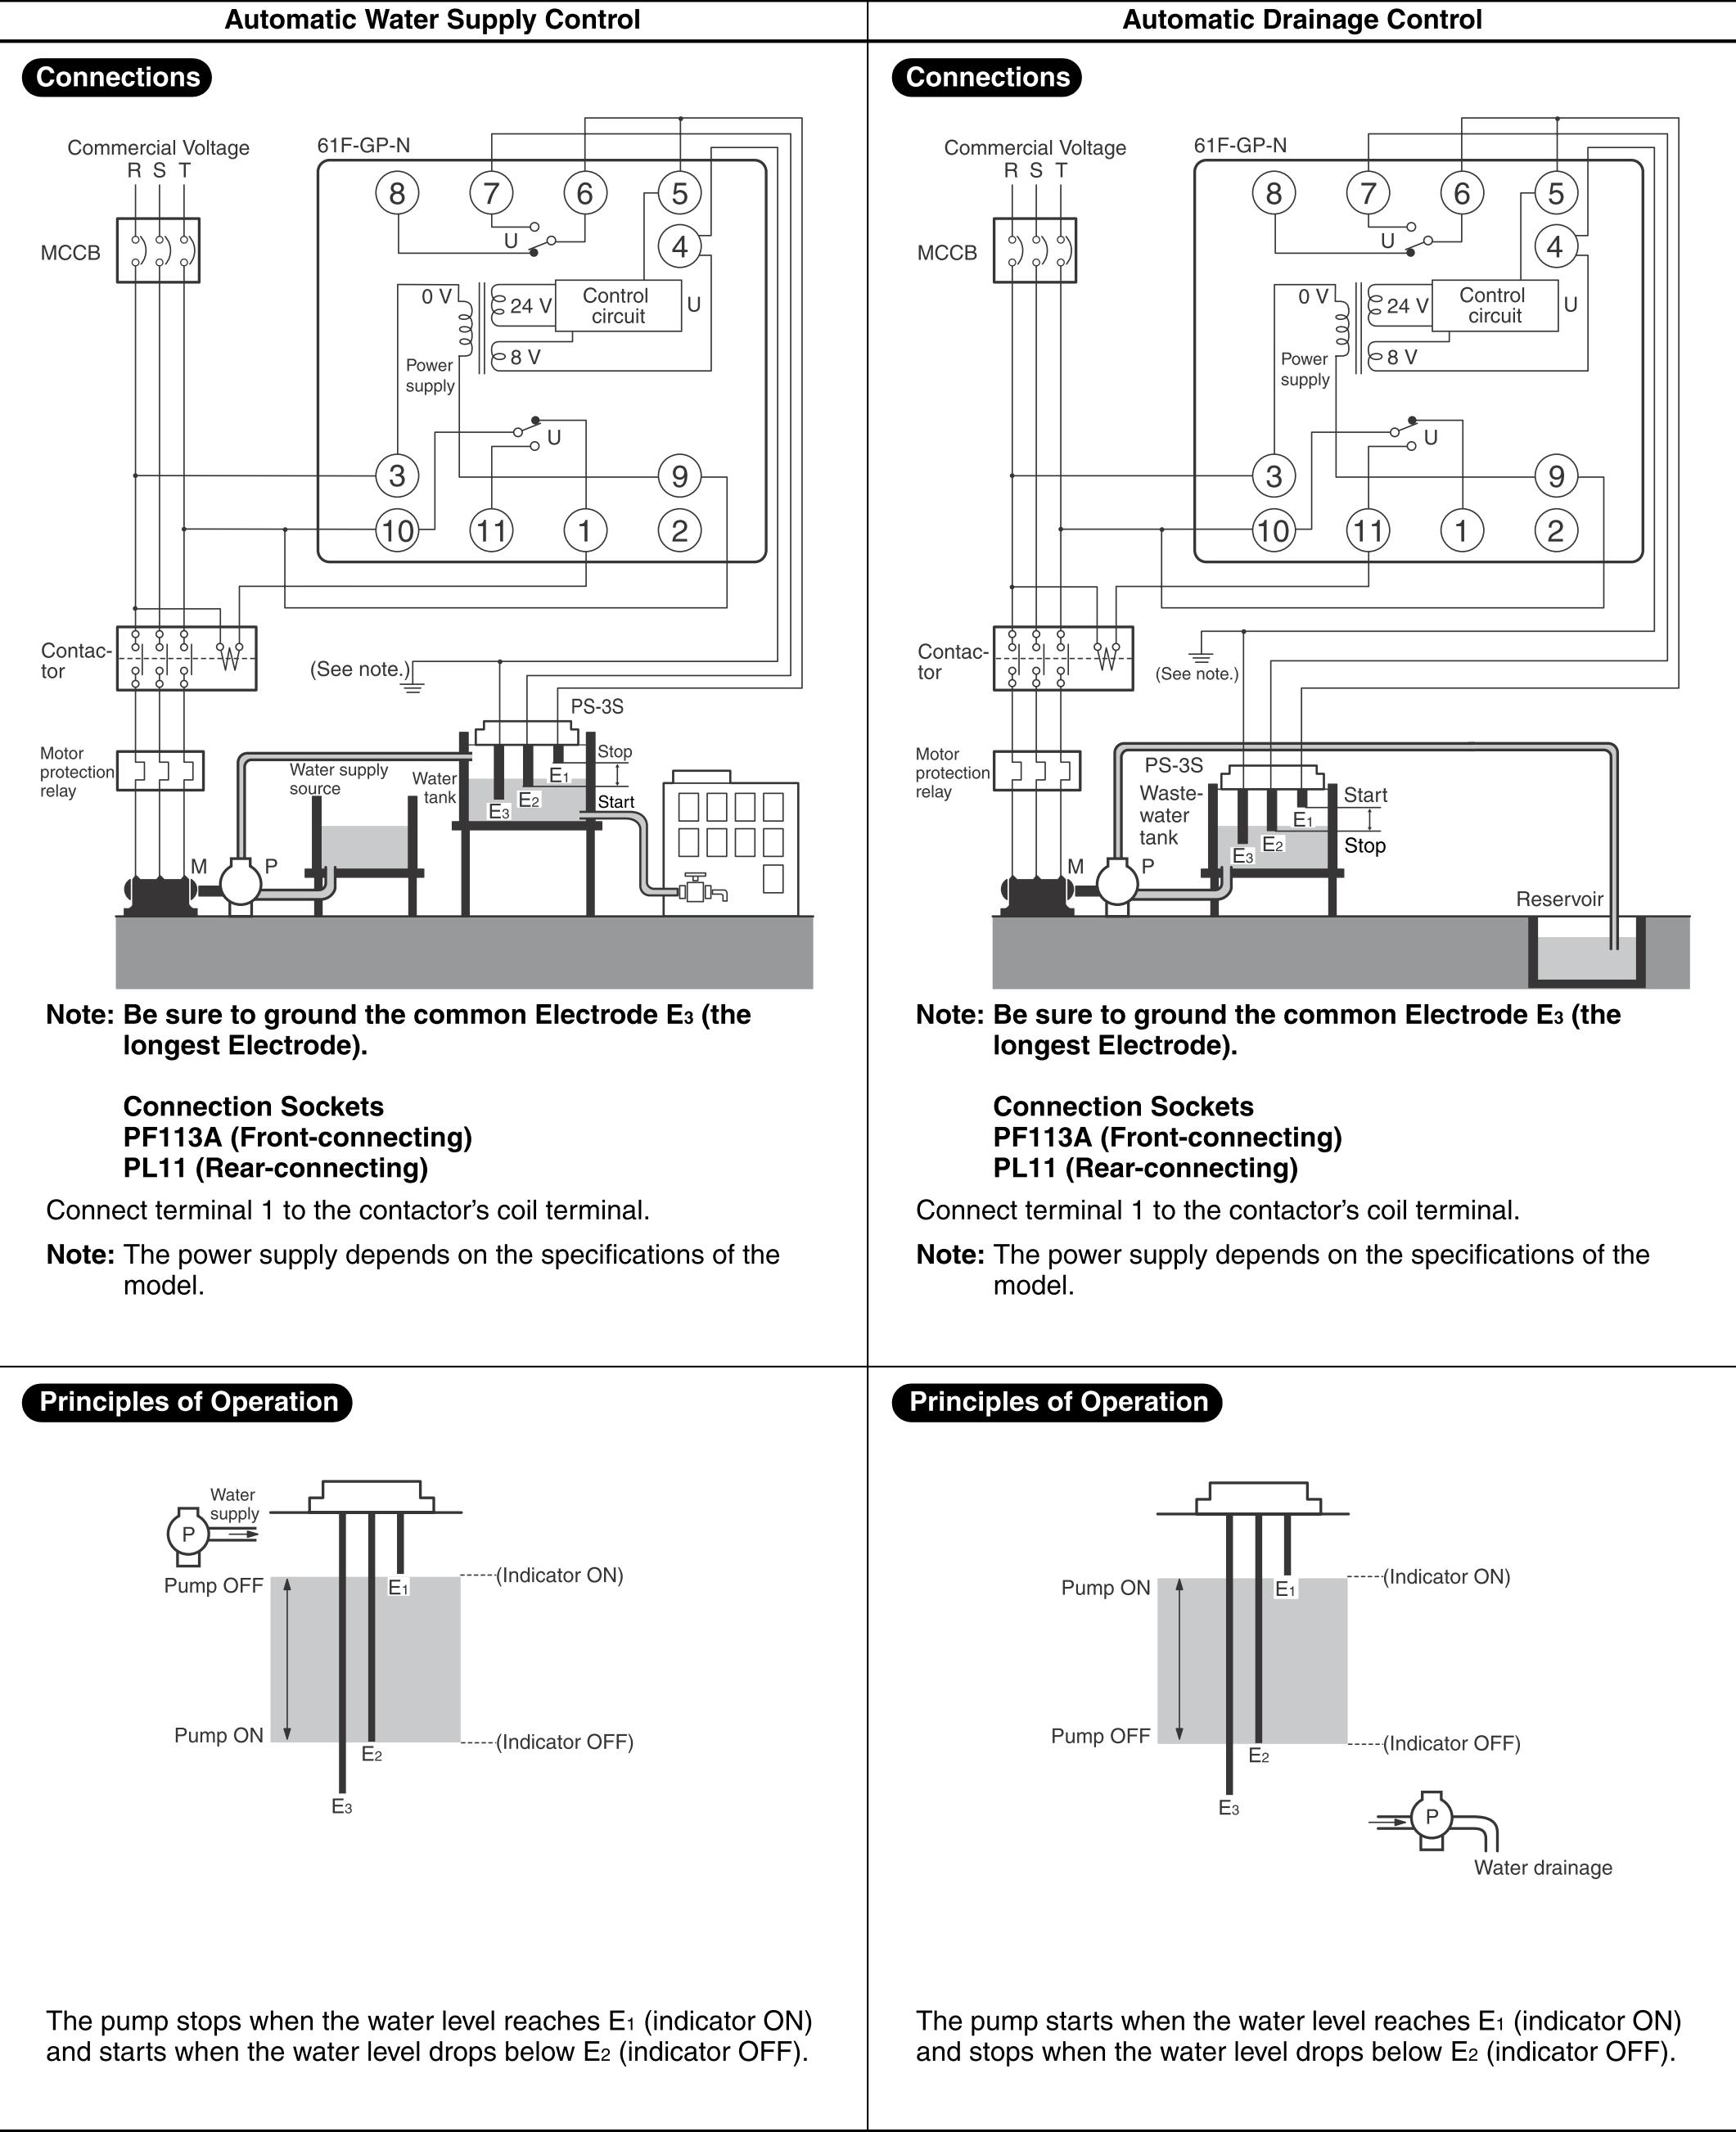 Omron 61f Gp N Wiring Diagram 29 Images Relay Circuit Connections Directory Image Plc Diagrams At